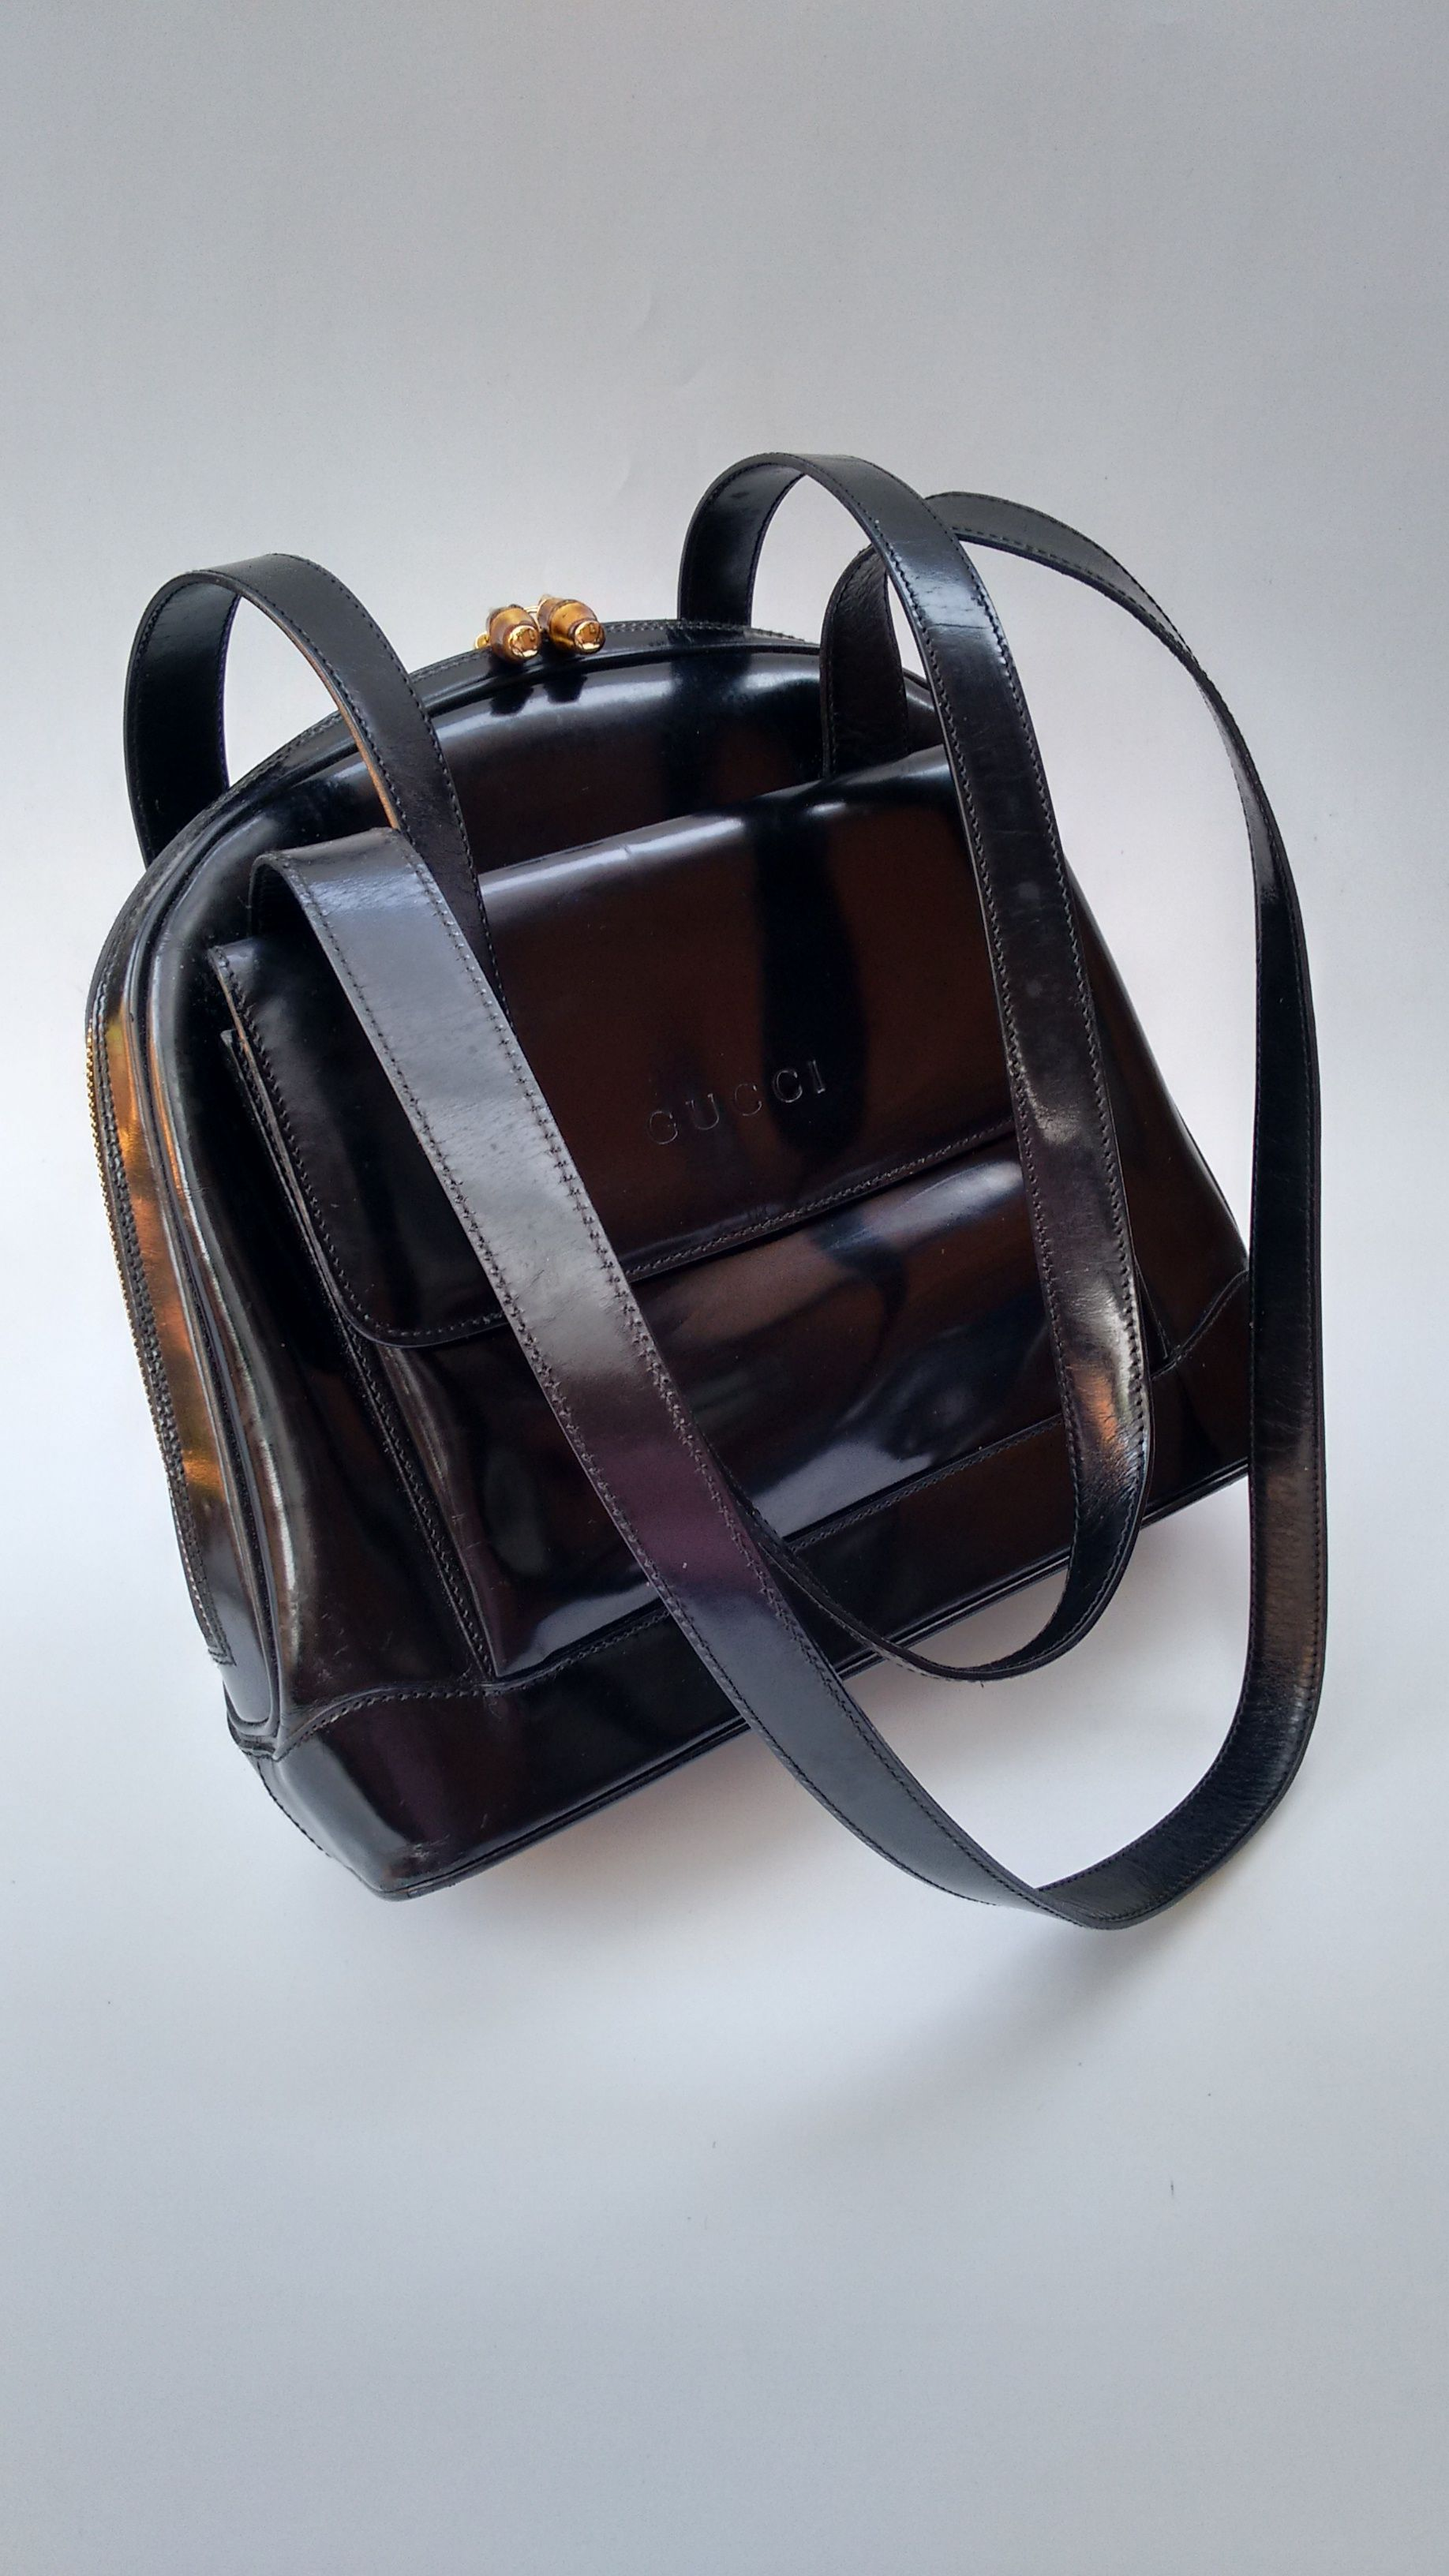 100% Authentic designer bags and jewellery! by Sophiashop123. GUCCI Bag. Gucci  Bamboo Vintage Black Leather Shoulder ... 923d747412